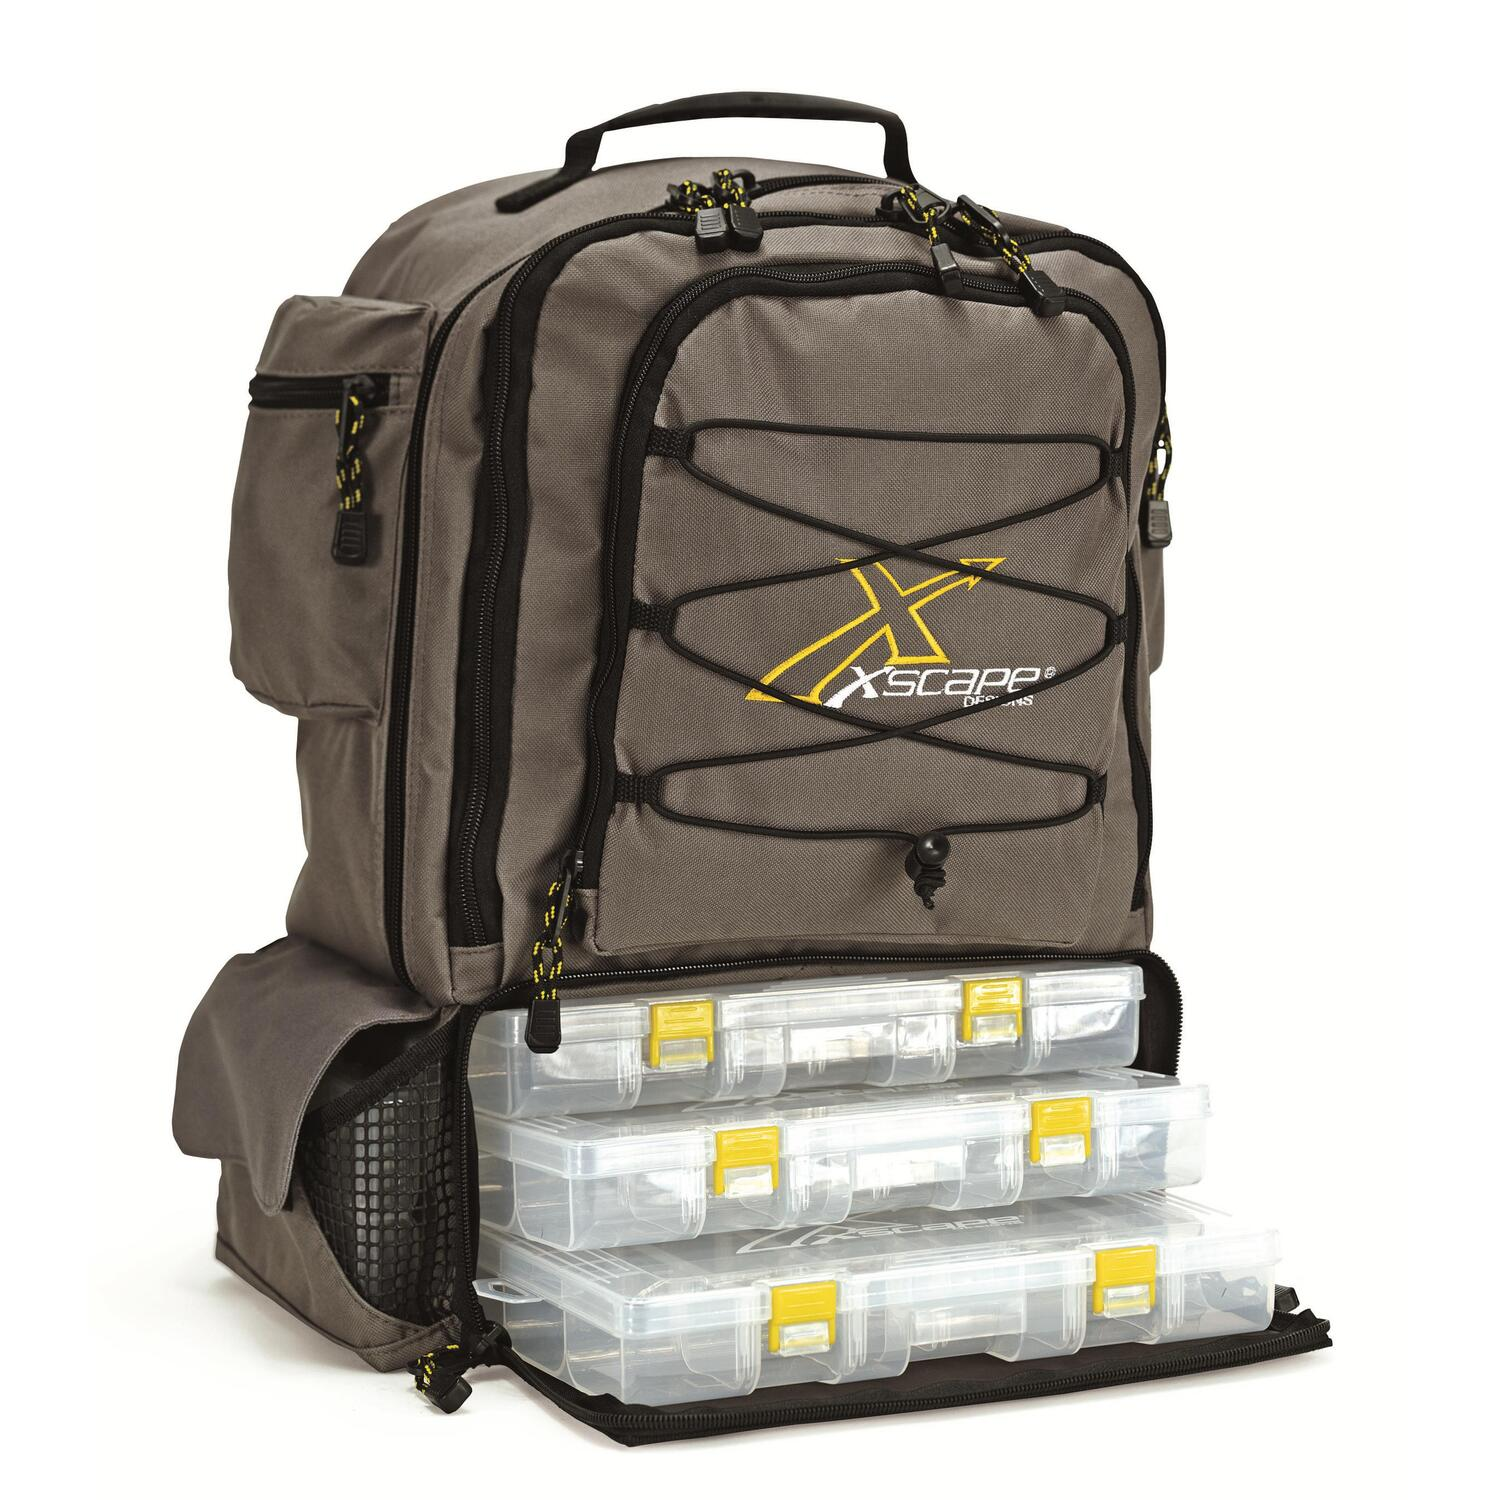 Fishing backpack for Fishing tackle box backpack